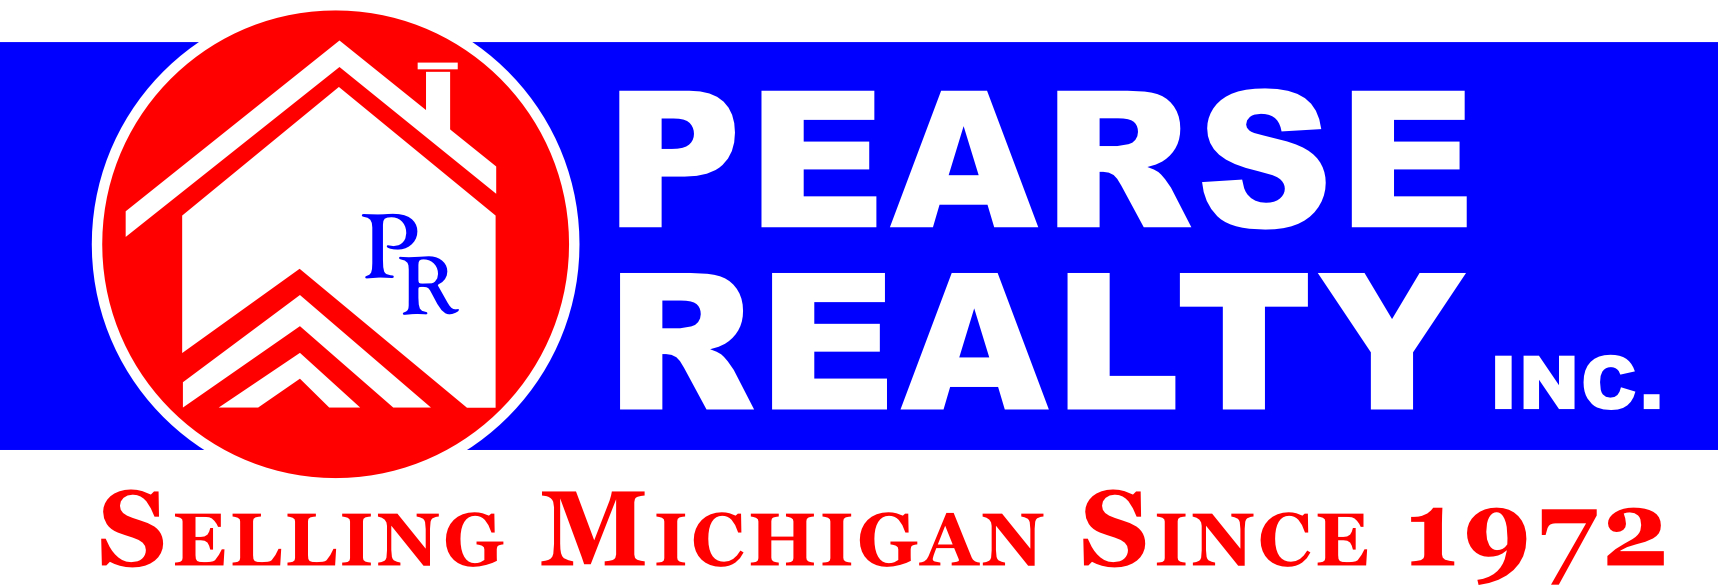 Pearse Realty Inc.